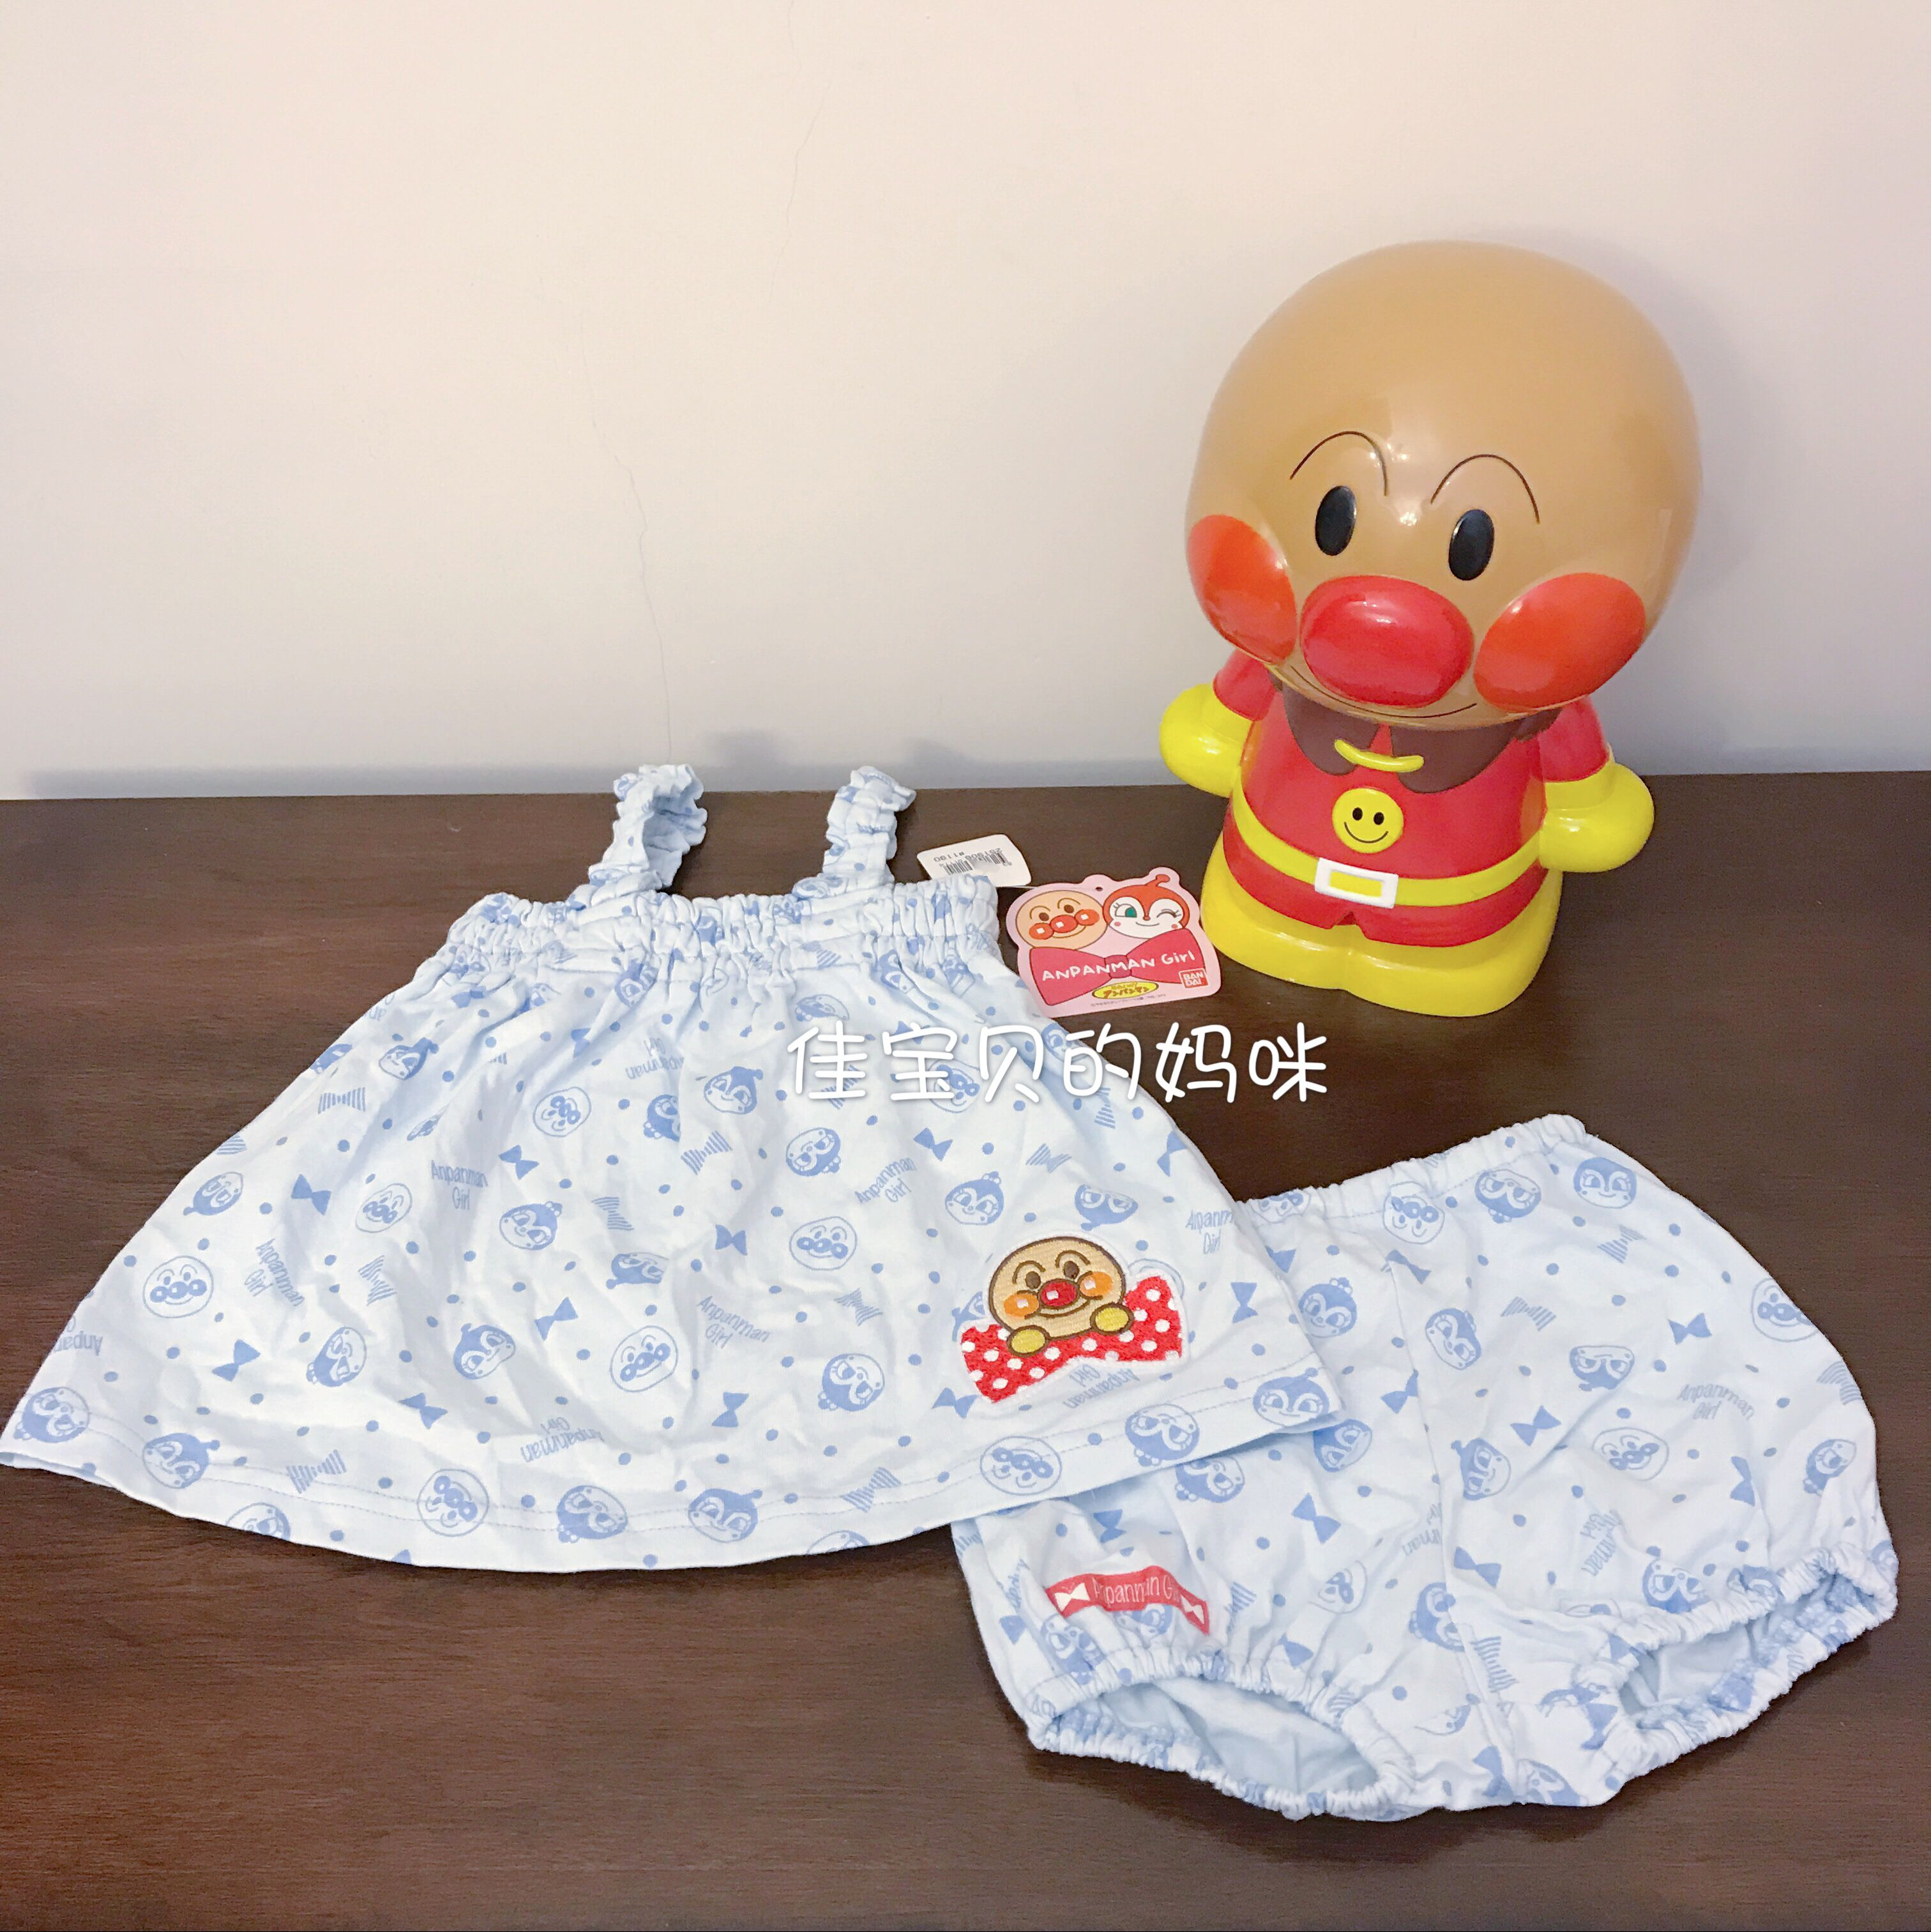 Spot mail, Japan imported bread Superman baby, summer cotton comfortable breathable belt, Kazakhstan clothing set